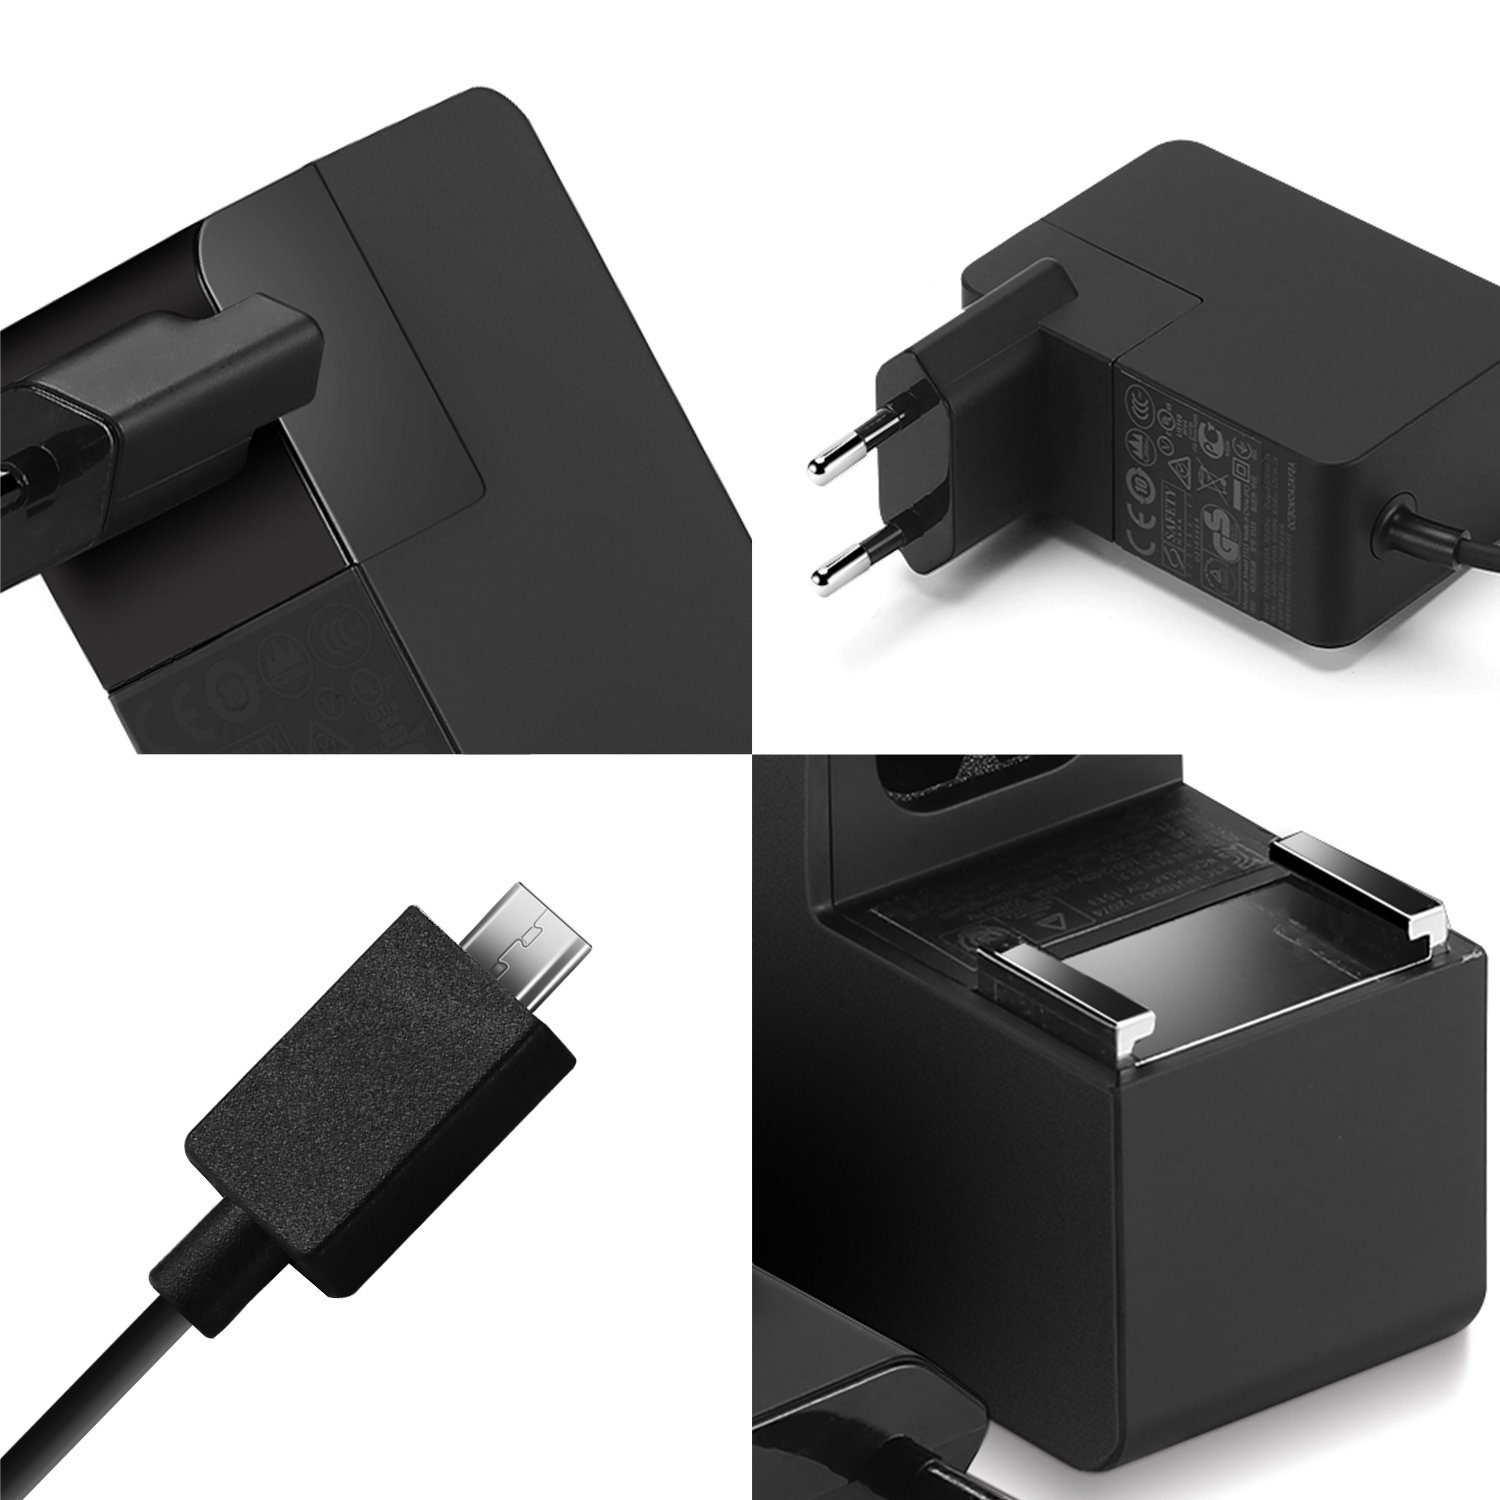 Surface 3 caricabatterie,YOUNGE 5.2V//2.5A 13W caricabatterie AC alimentazione adattatore per Microsoft Windows Surface 3 Tablet